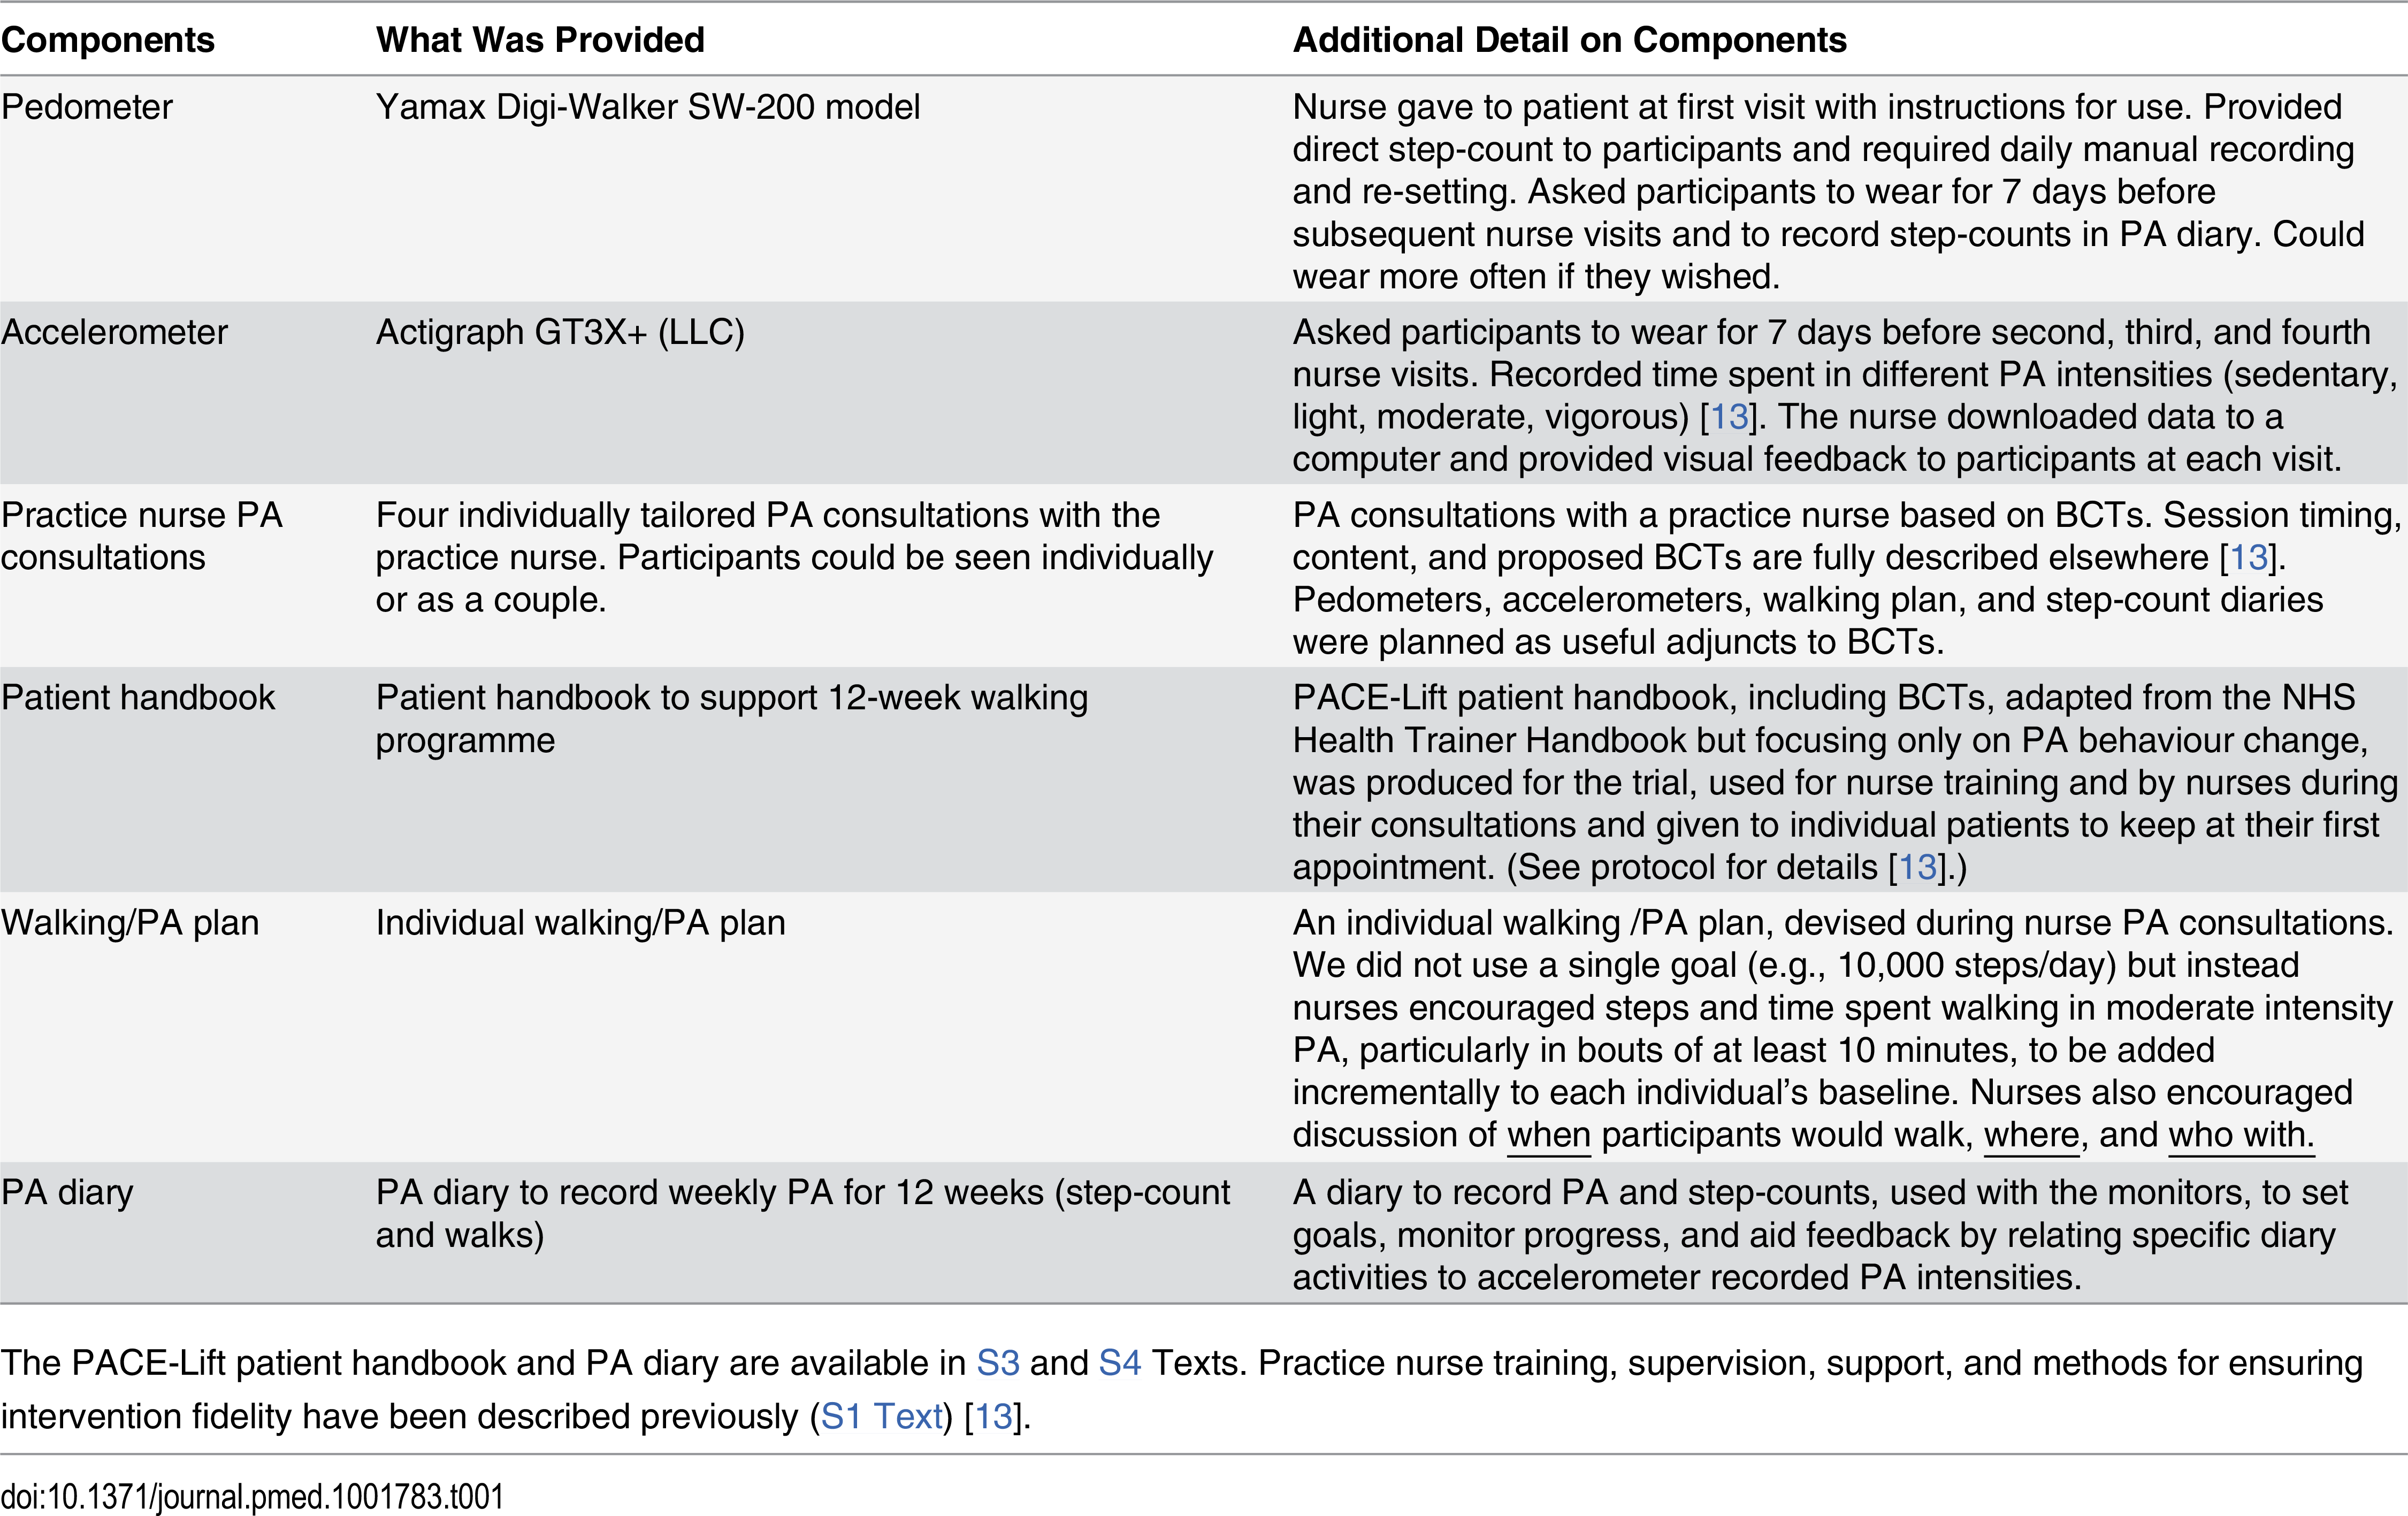 Components of the complex intervention for the PACE-Lift trial.